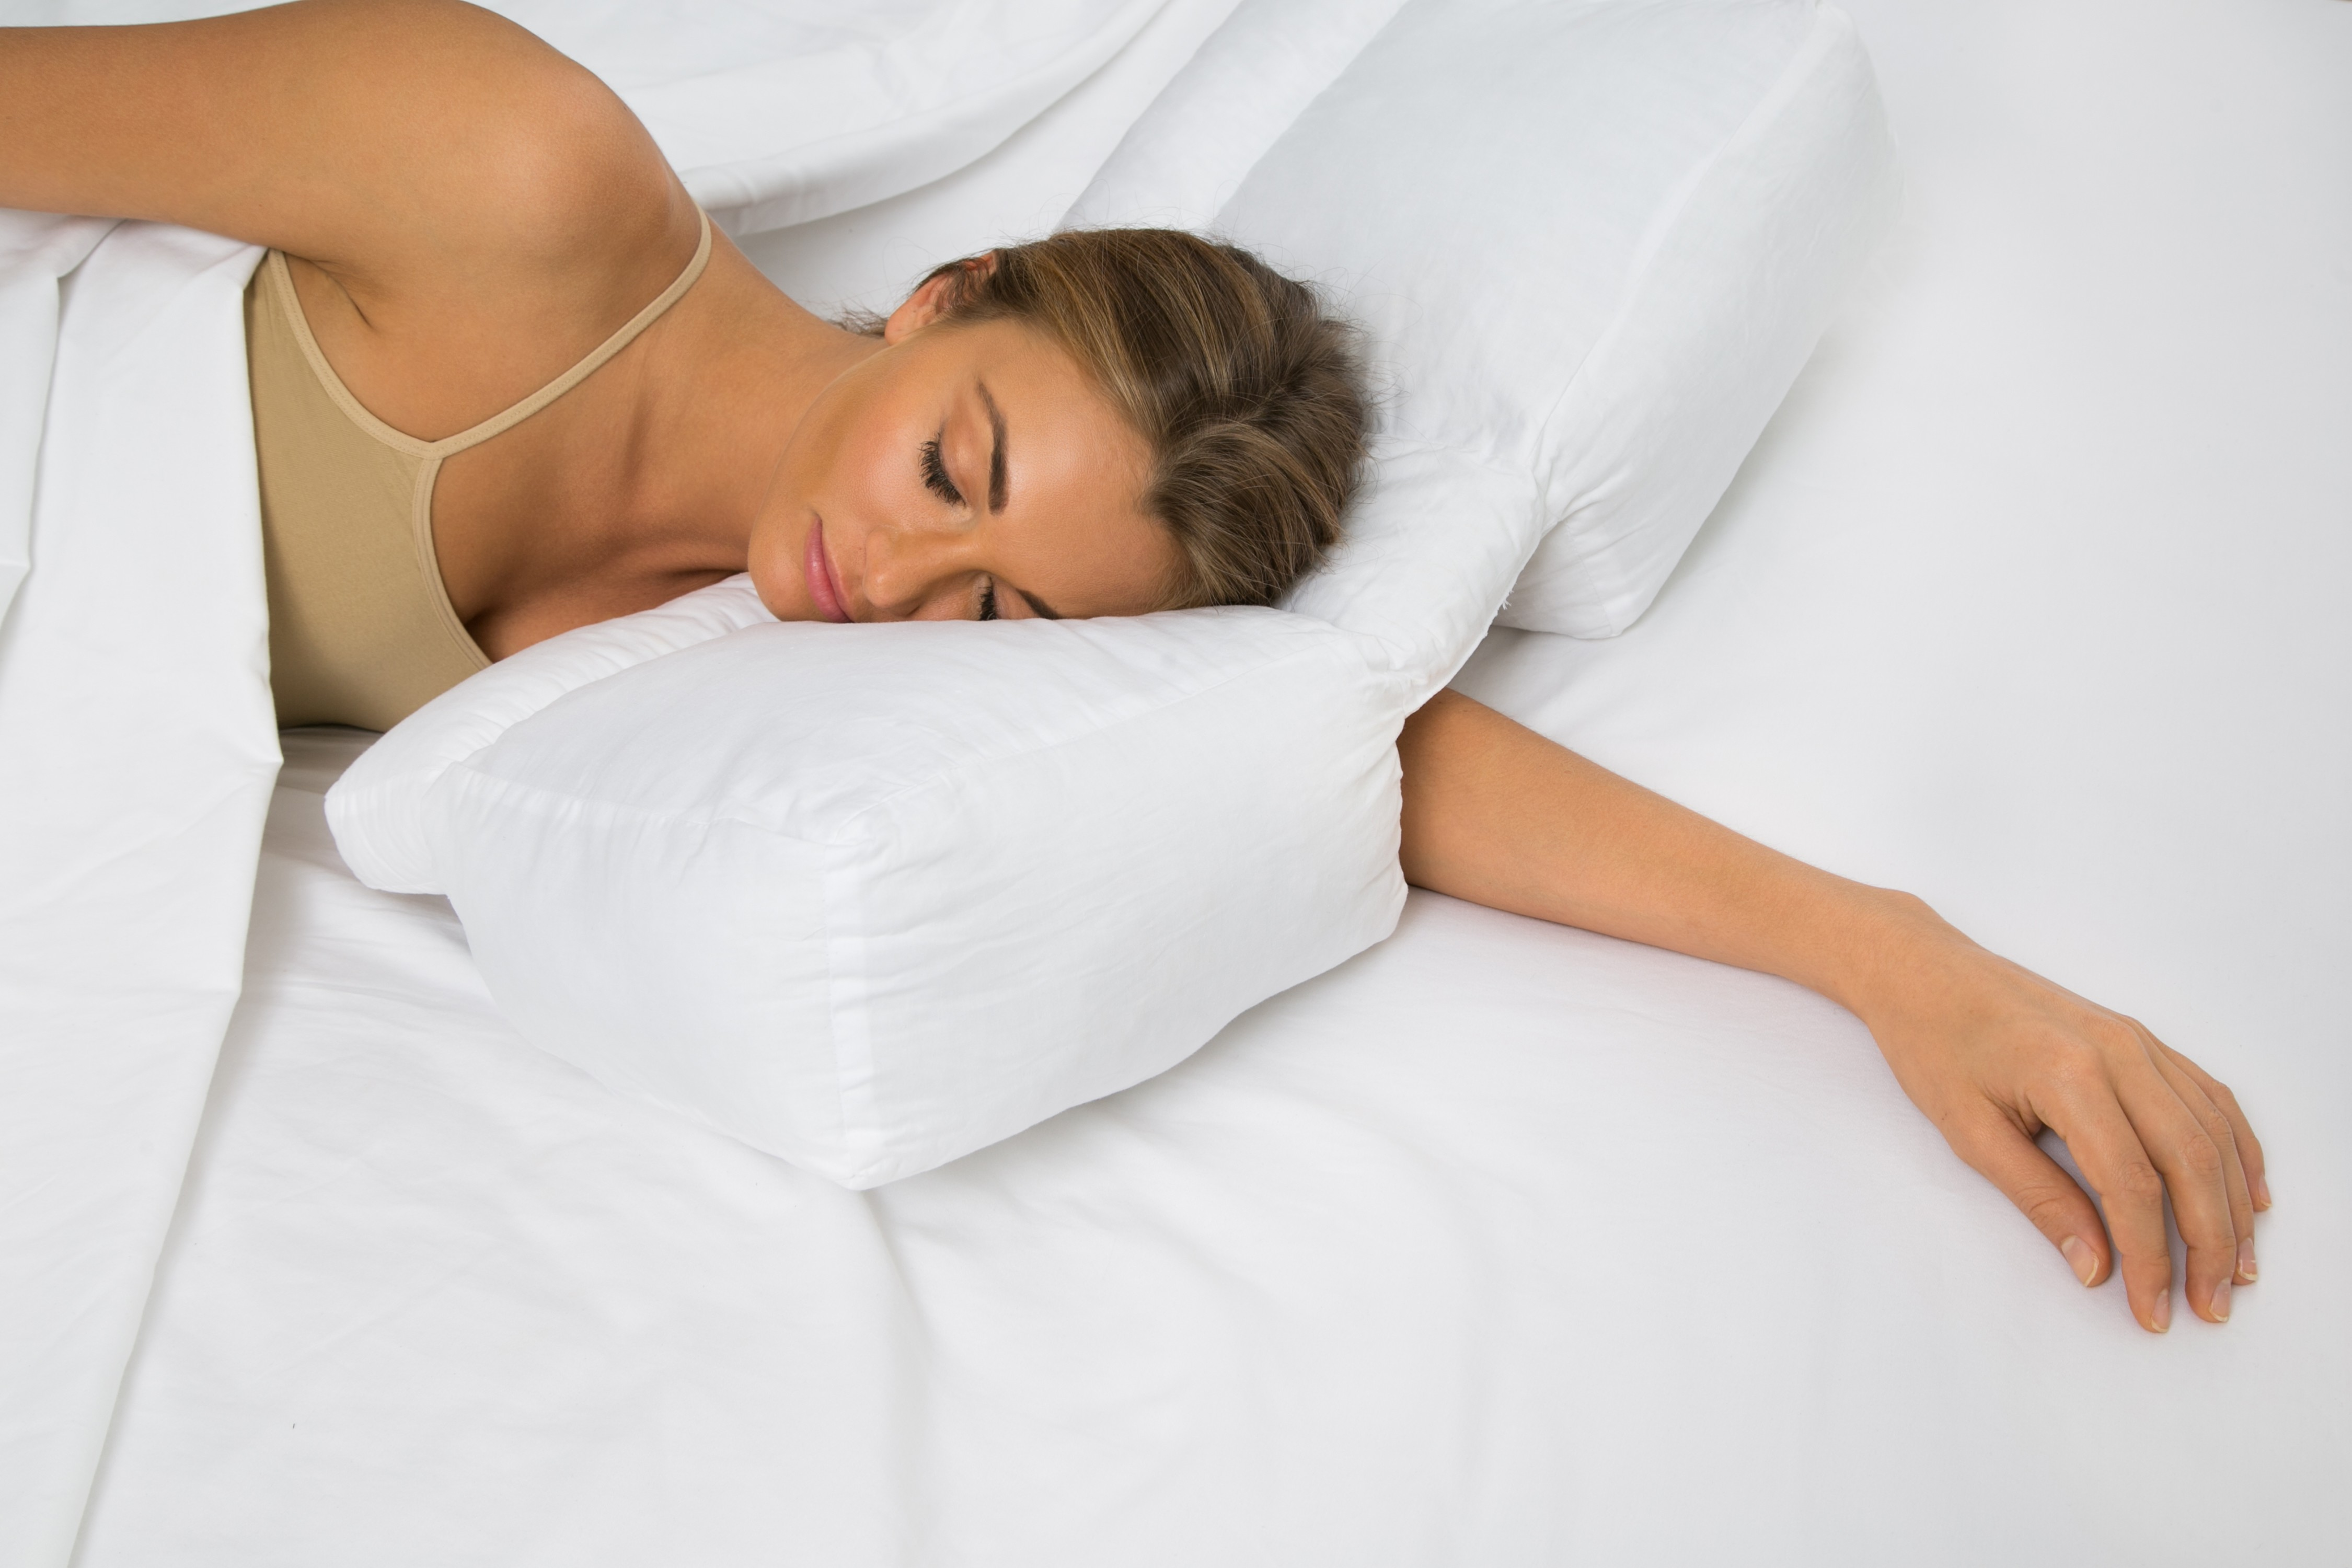 Better sleep pillow gel fiber pillow patented arm tunnel The more pillows you sleep with